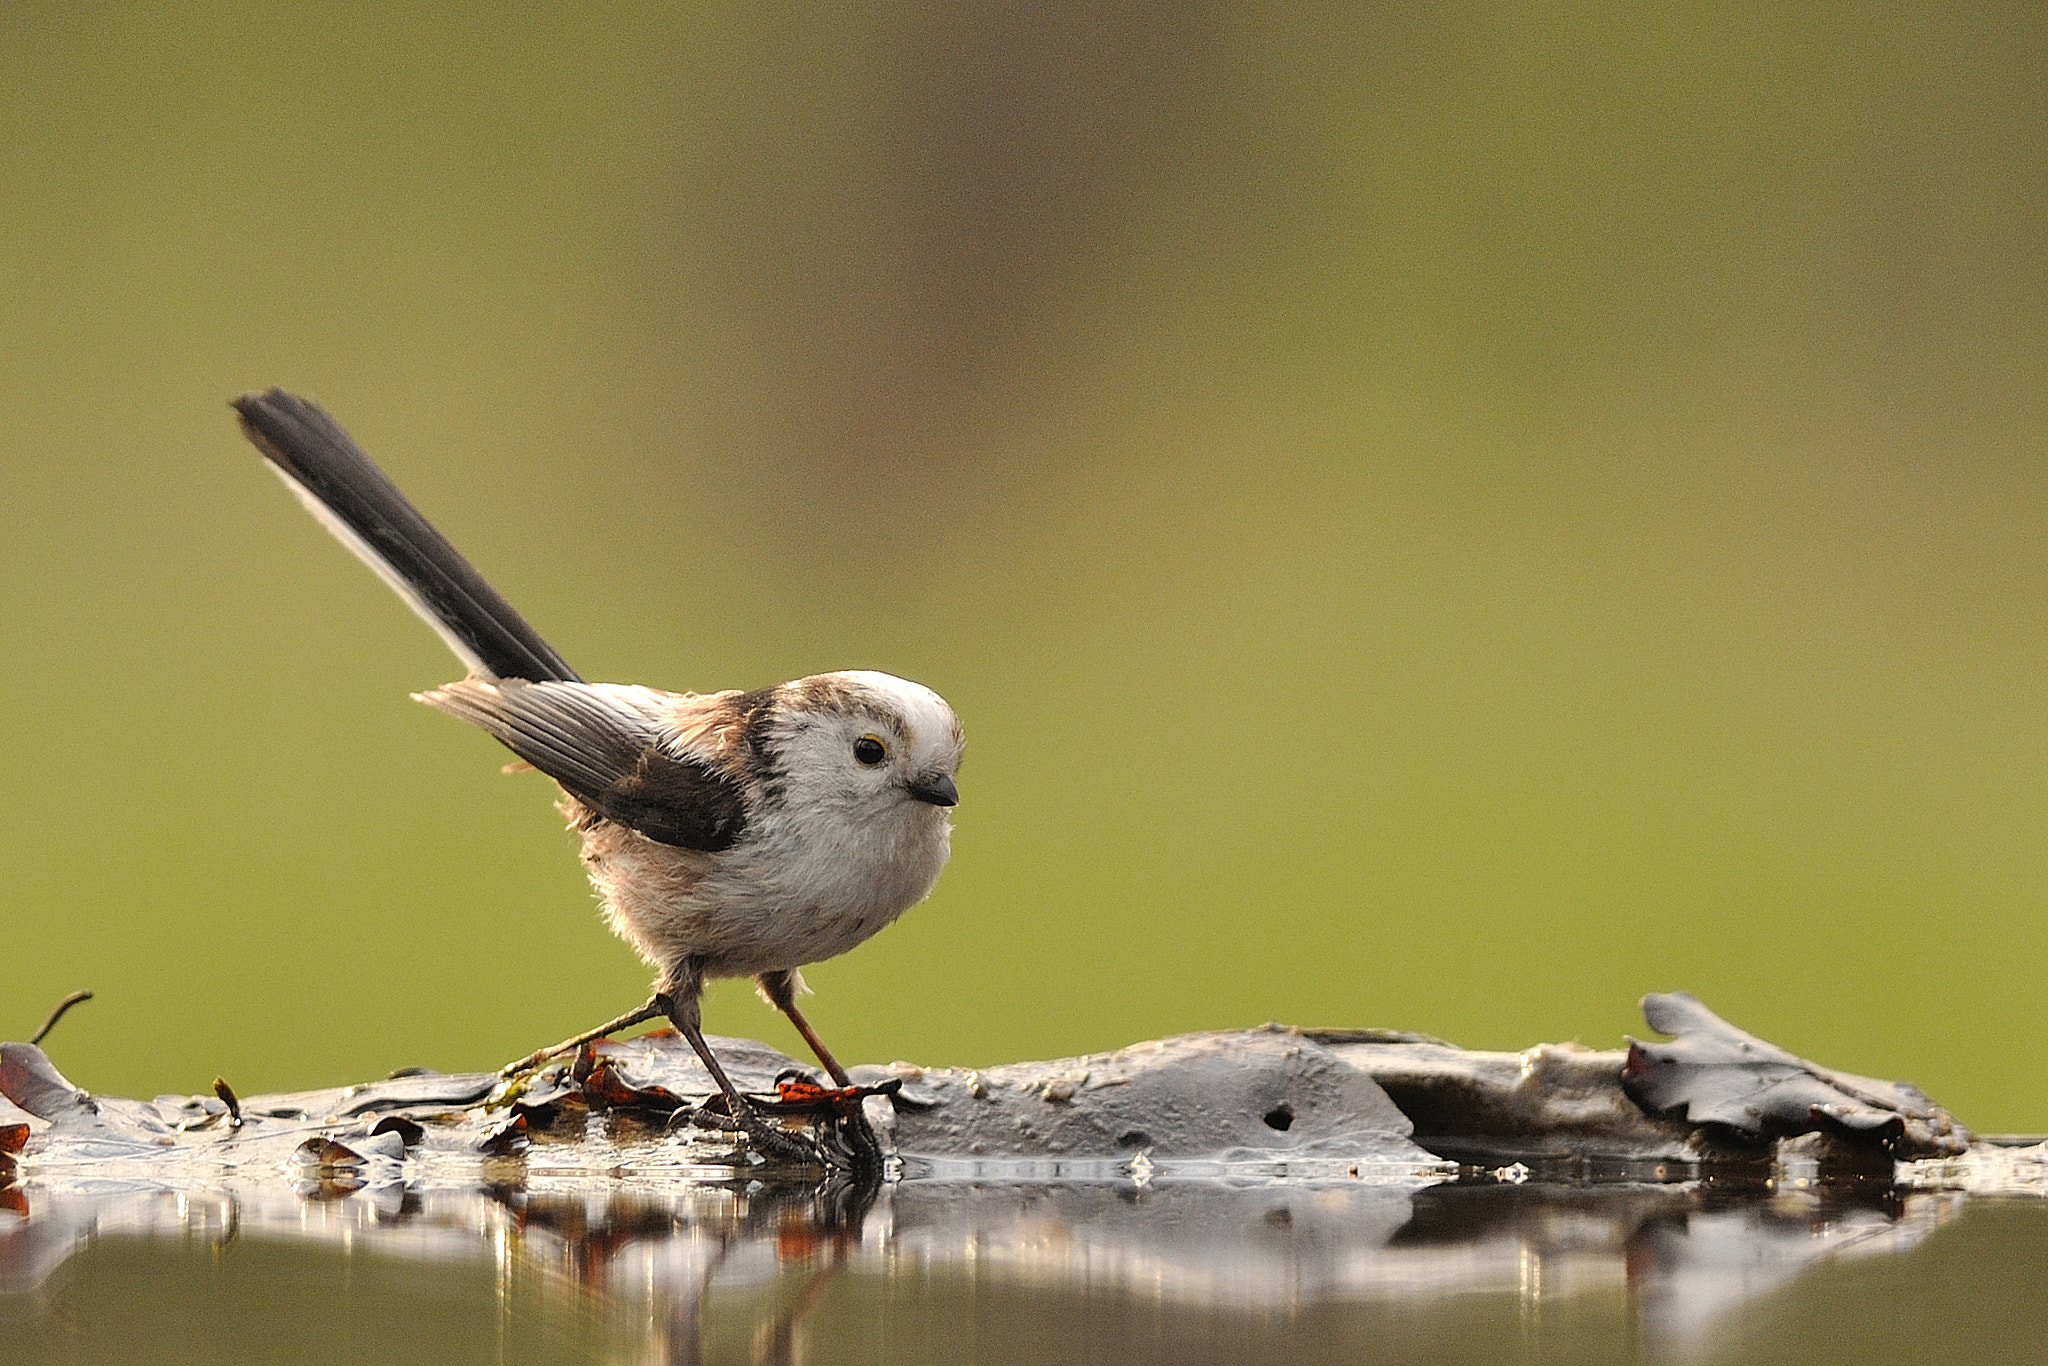 Photograph Long Tailed Tit by Csilla Zelko on 500px